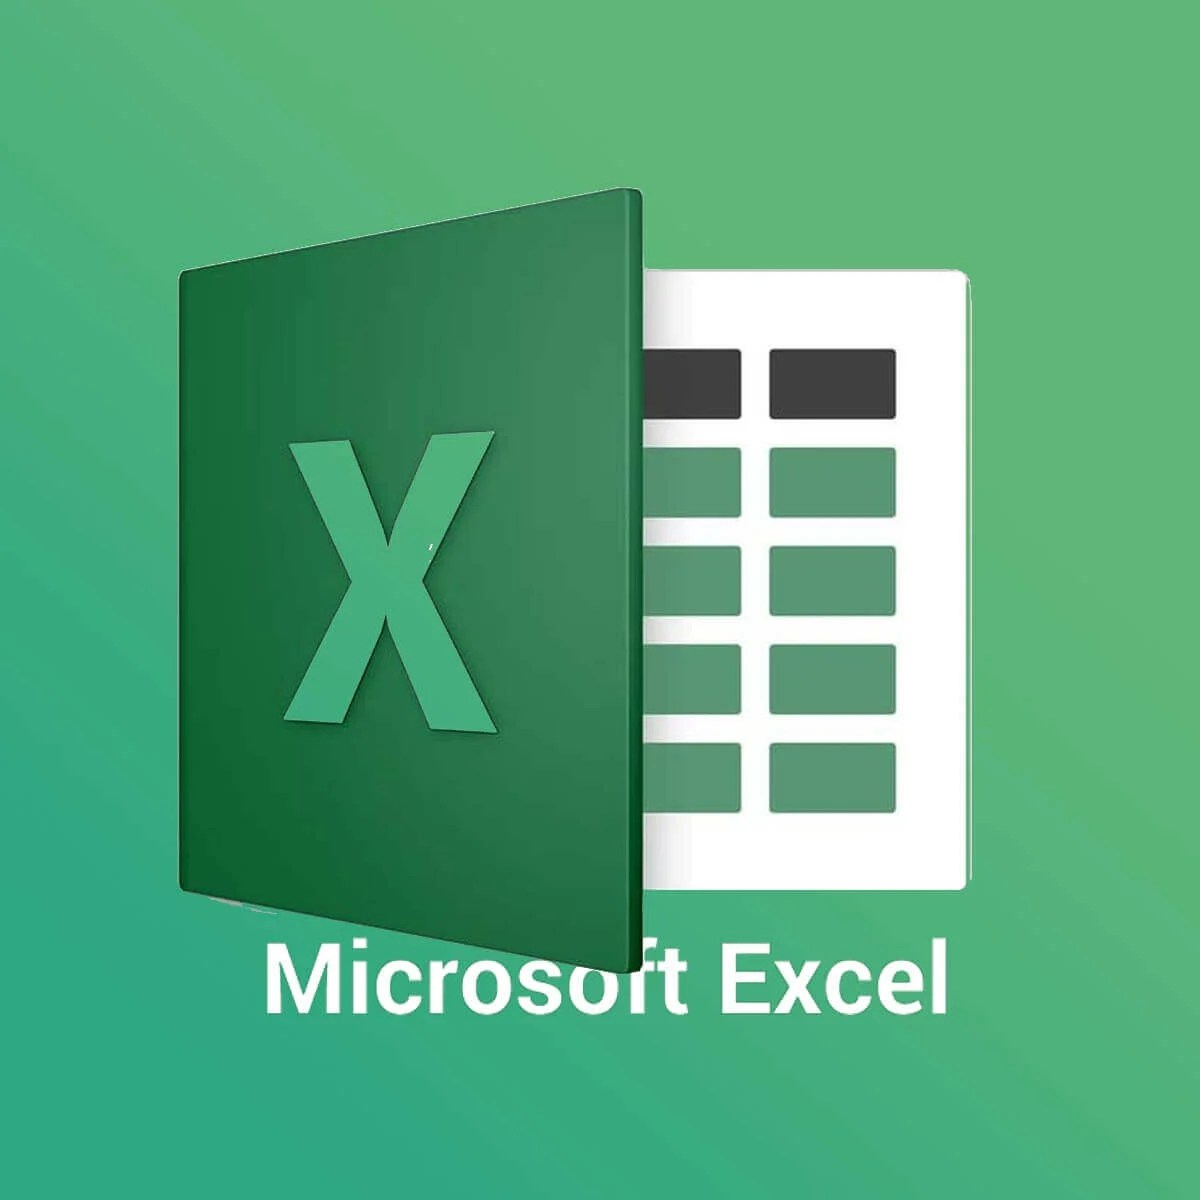 Fix Excel Spreadsheet Doesn T Add Up Correctly